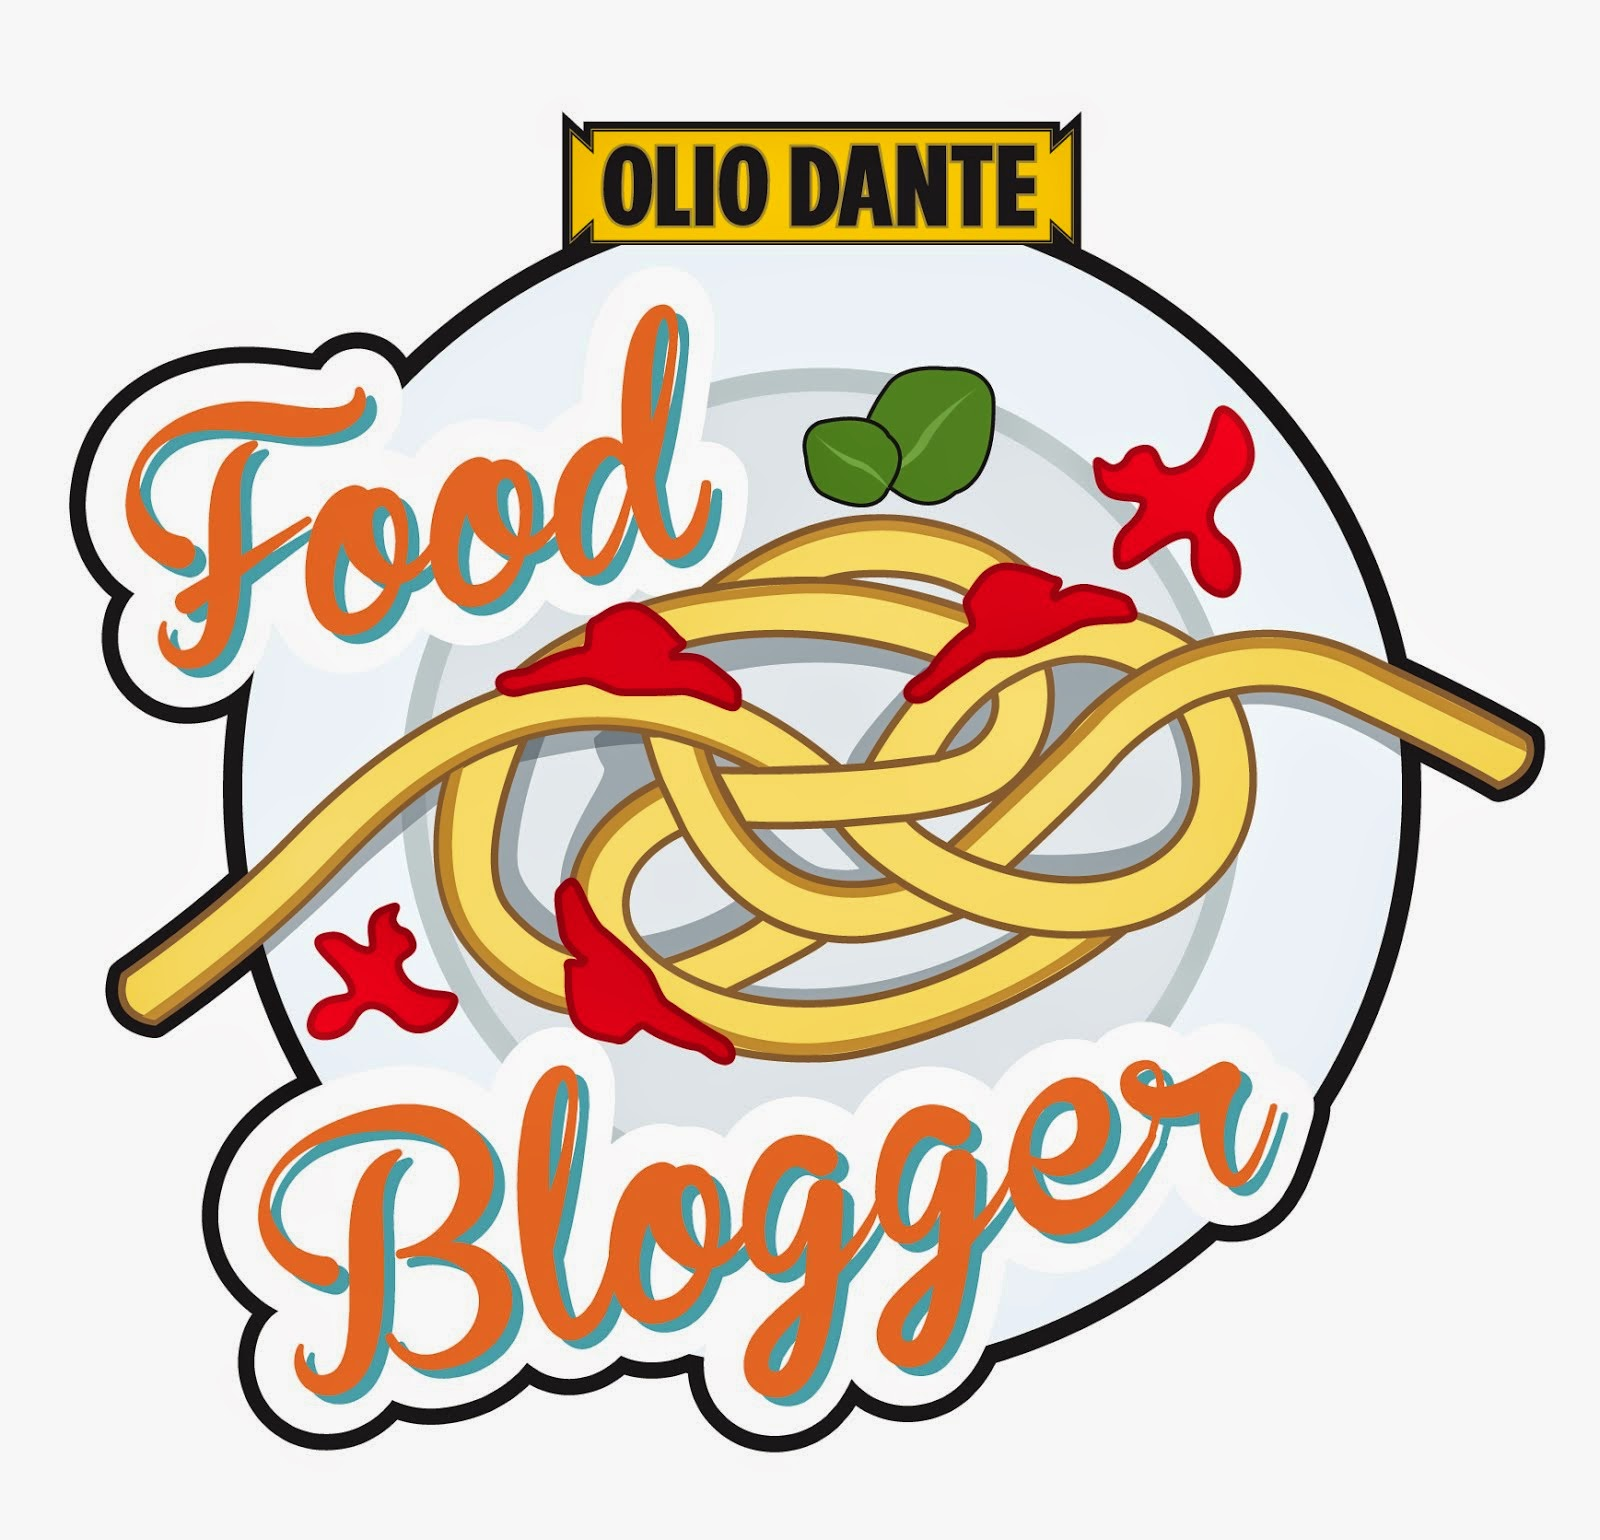 FOOD BLOGGER OLIO DANTE